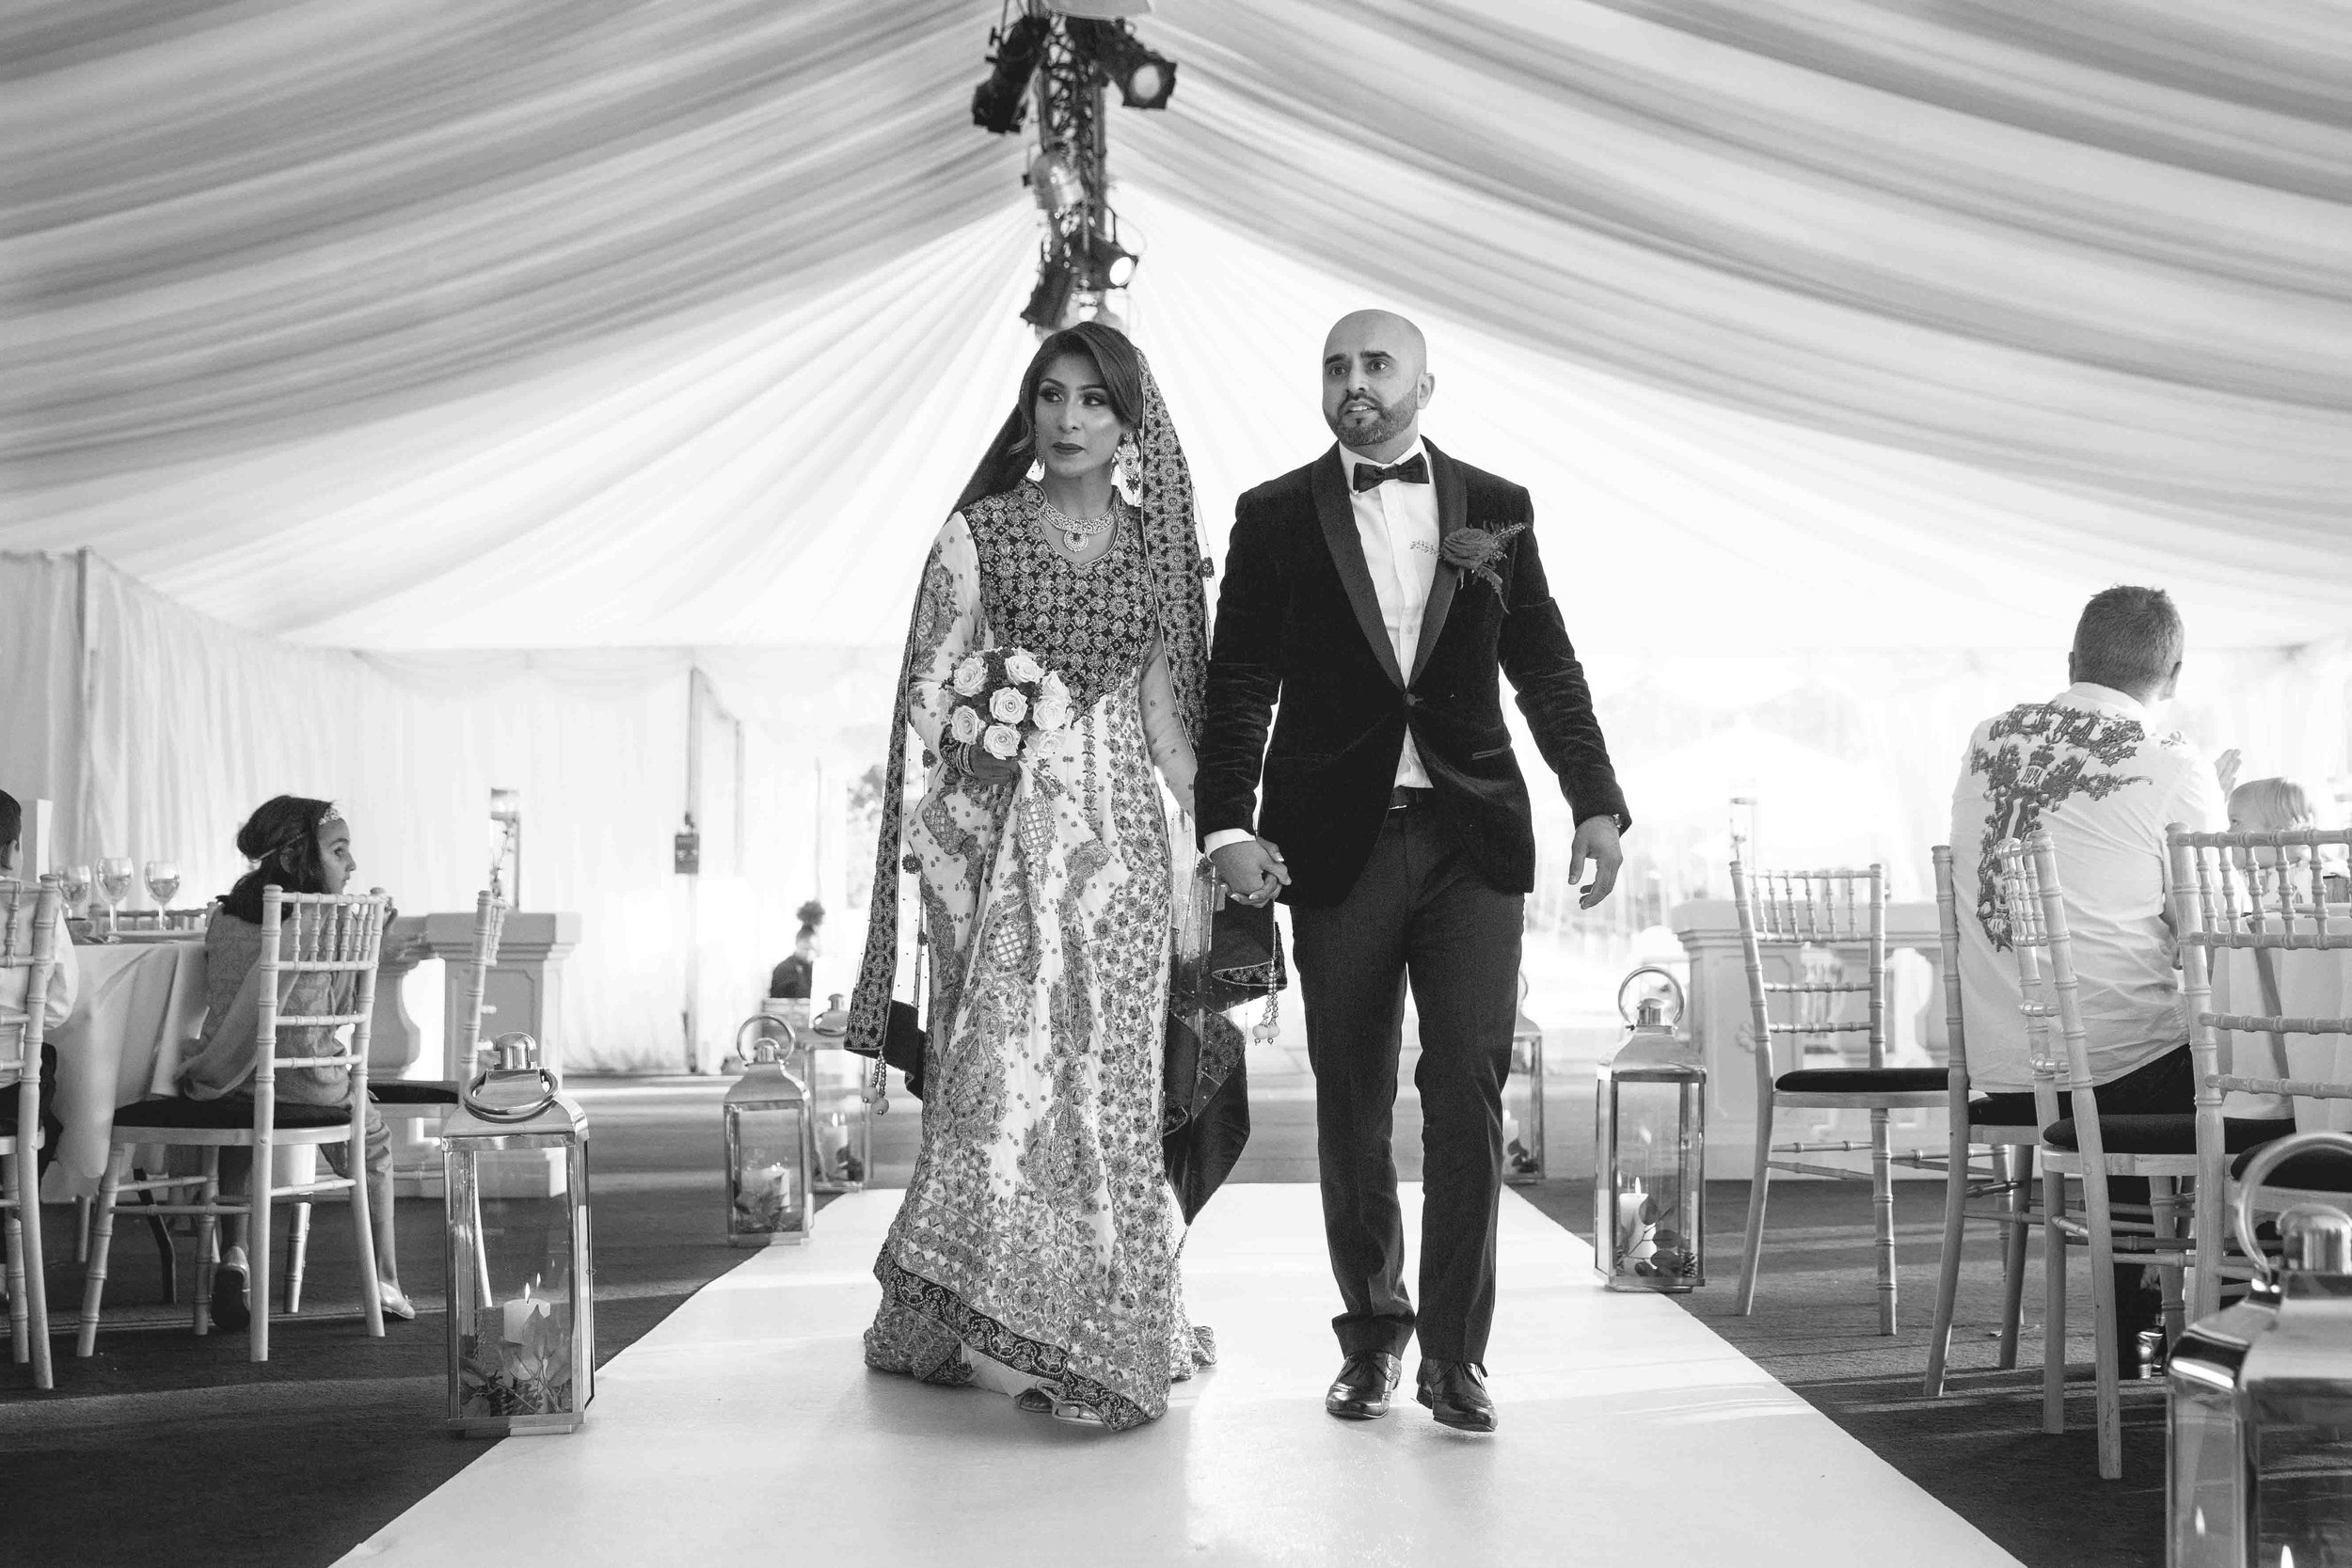 Asian Wedding Photographer Opu Sultan Photography Lyme Park Scotland Edinburgh Glasgow London Manchester Liverpool Birmingham Wedding Photos prewed shoot Azman & Saira Blog-102.jpg